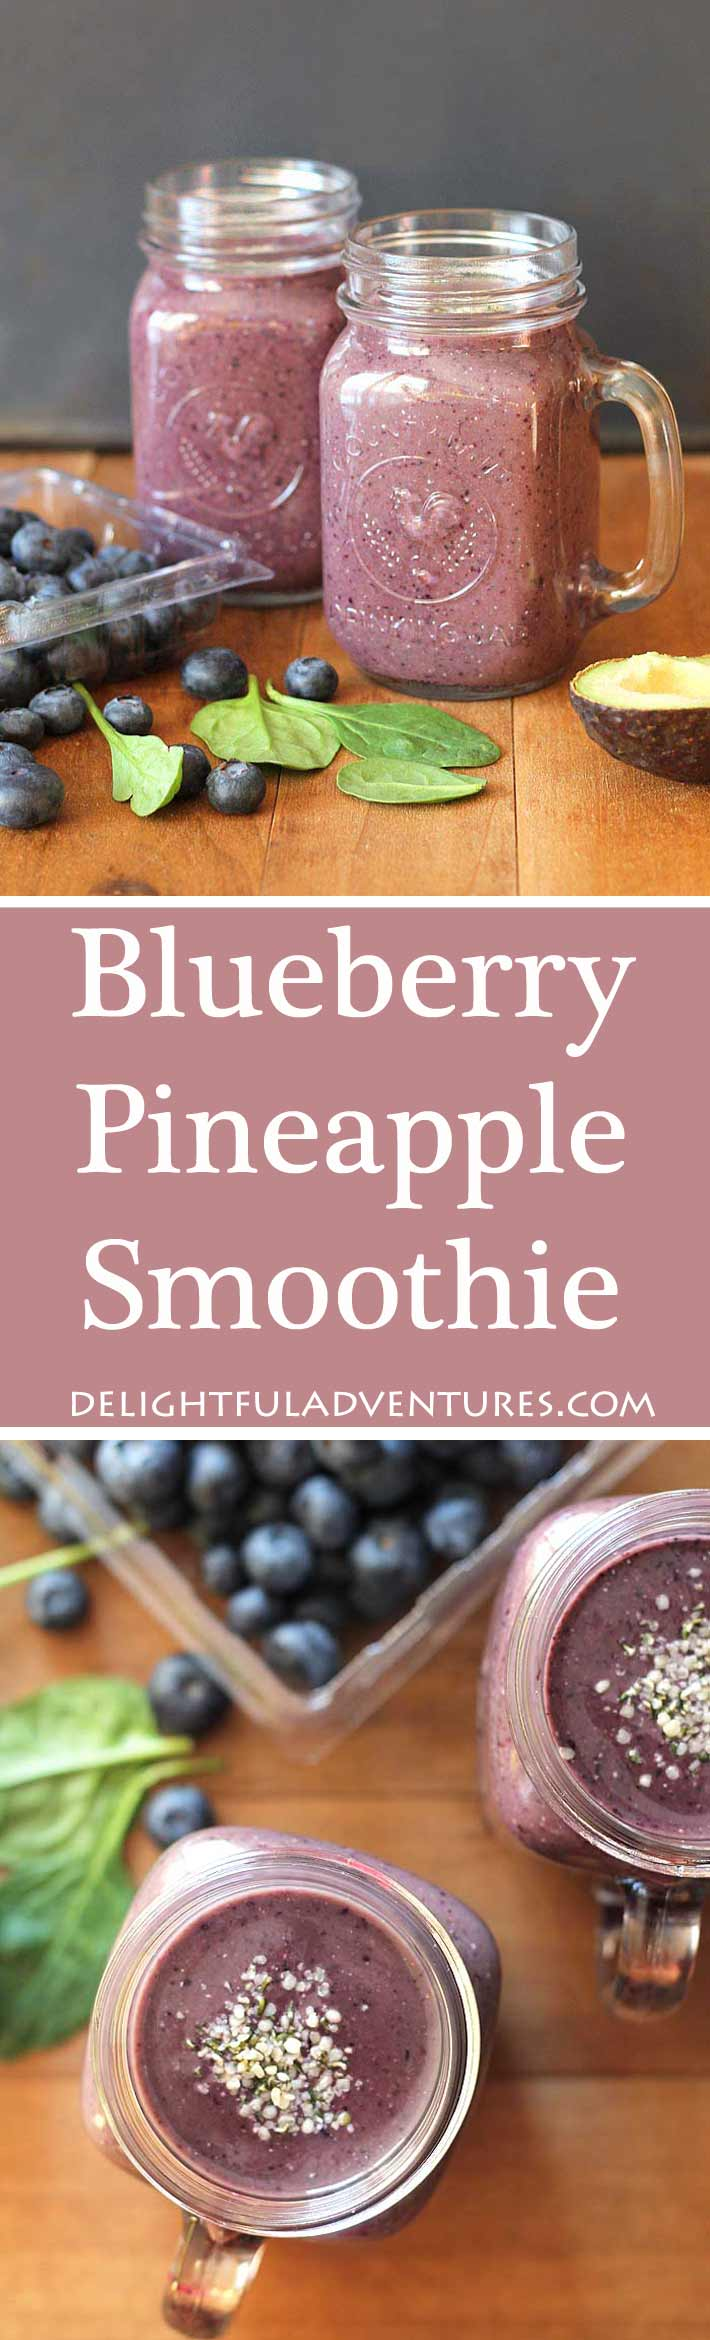 A refreshing and healthy way to start your day is with a blueberry pineapple smoothie. It's loaded with fruits, vegetables, and it tastes delicious!